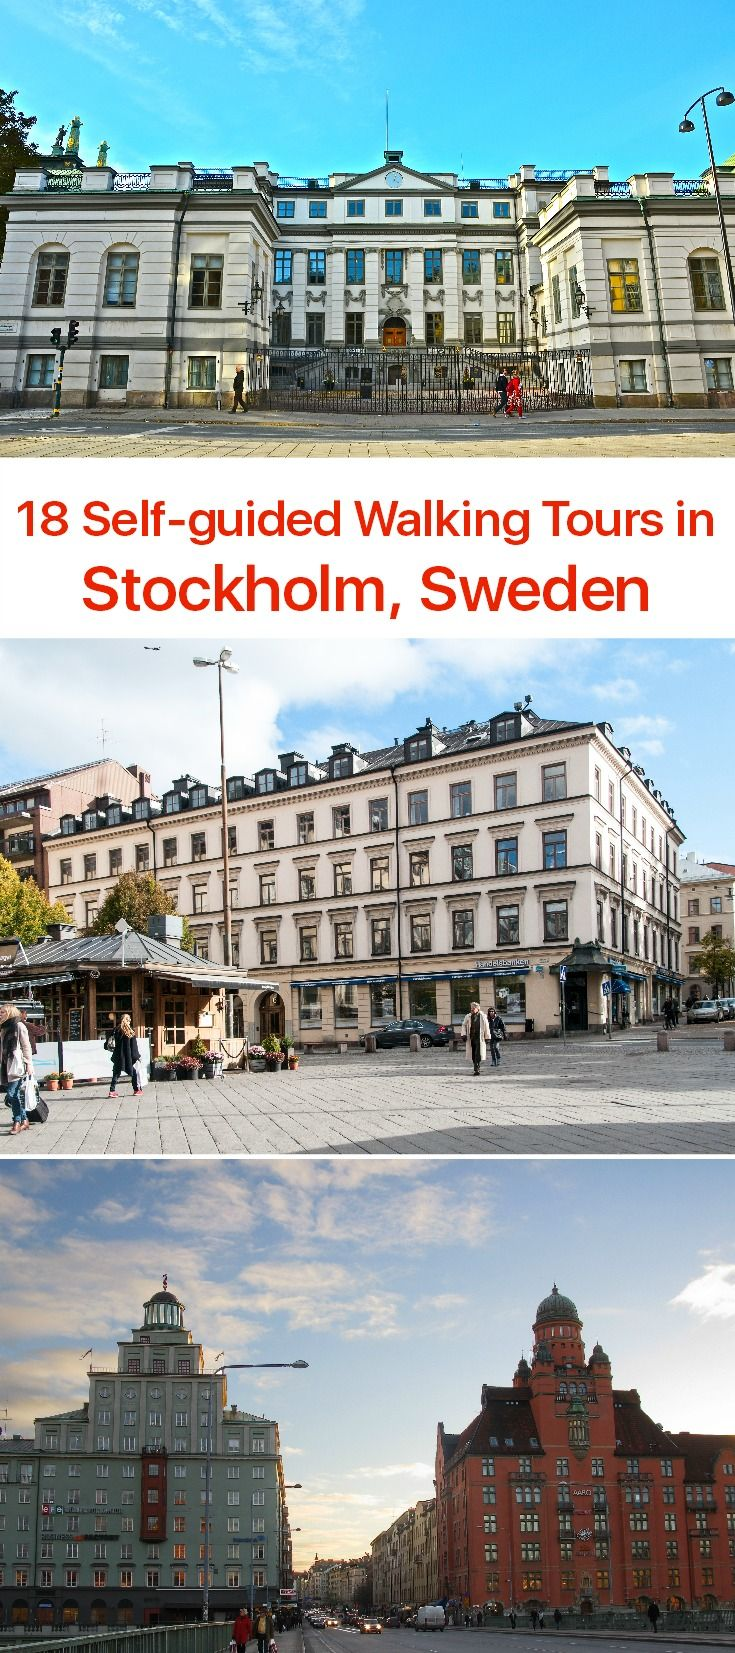 A former Viking settlement, built in a place where a tree log set down the stream hit the bank, today's Stockholm is one of the most comfortable cities in the world to live in. A true manifestation of Scandinavian urban culture and lifestyle